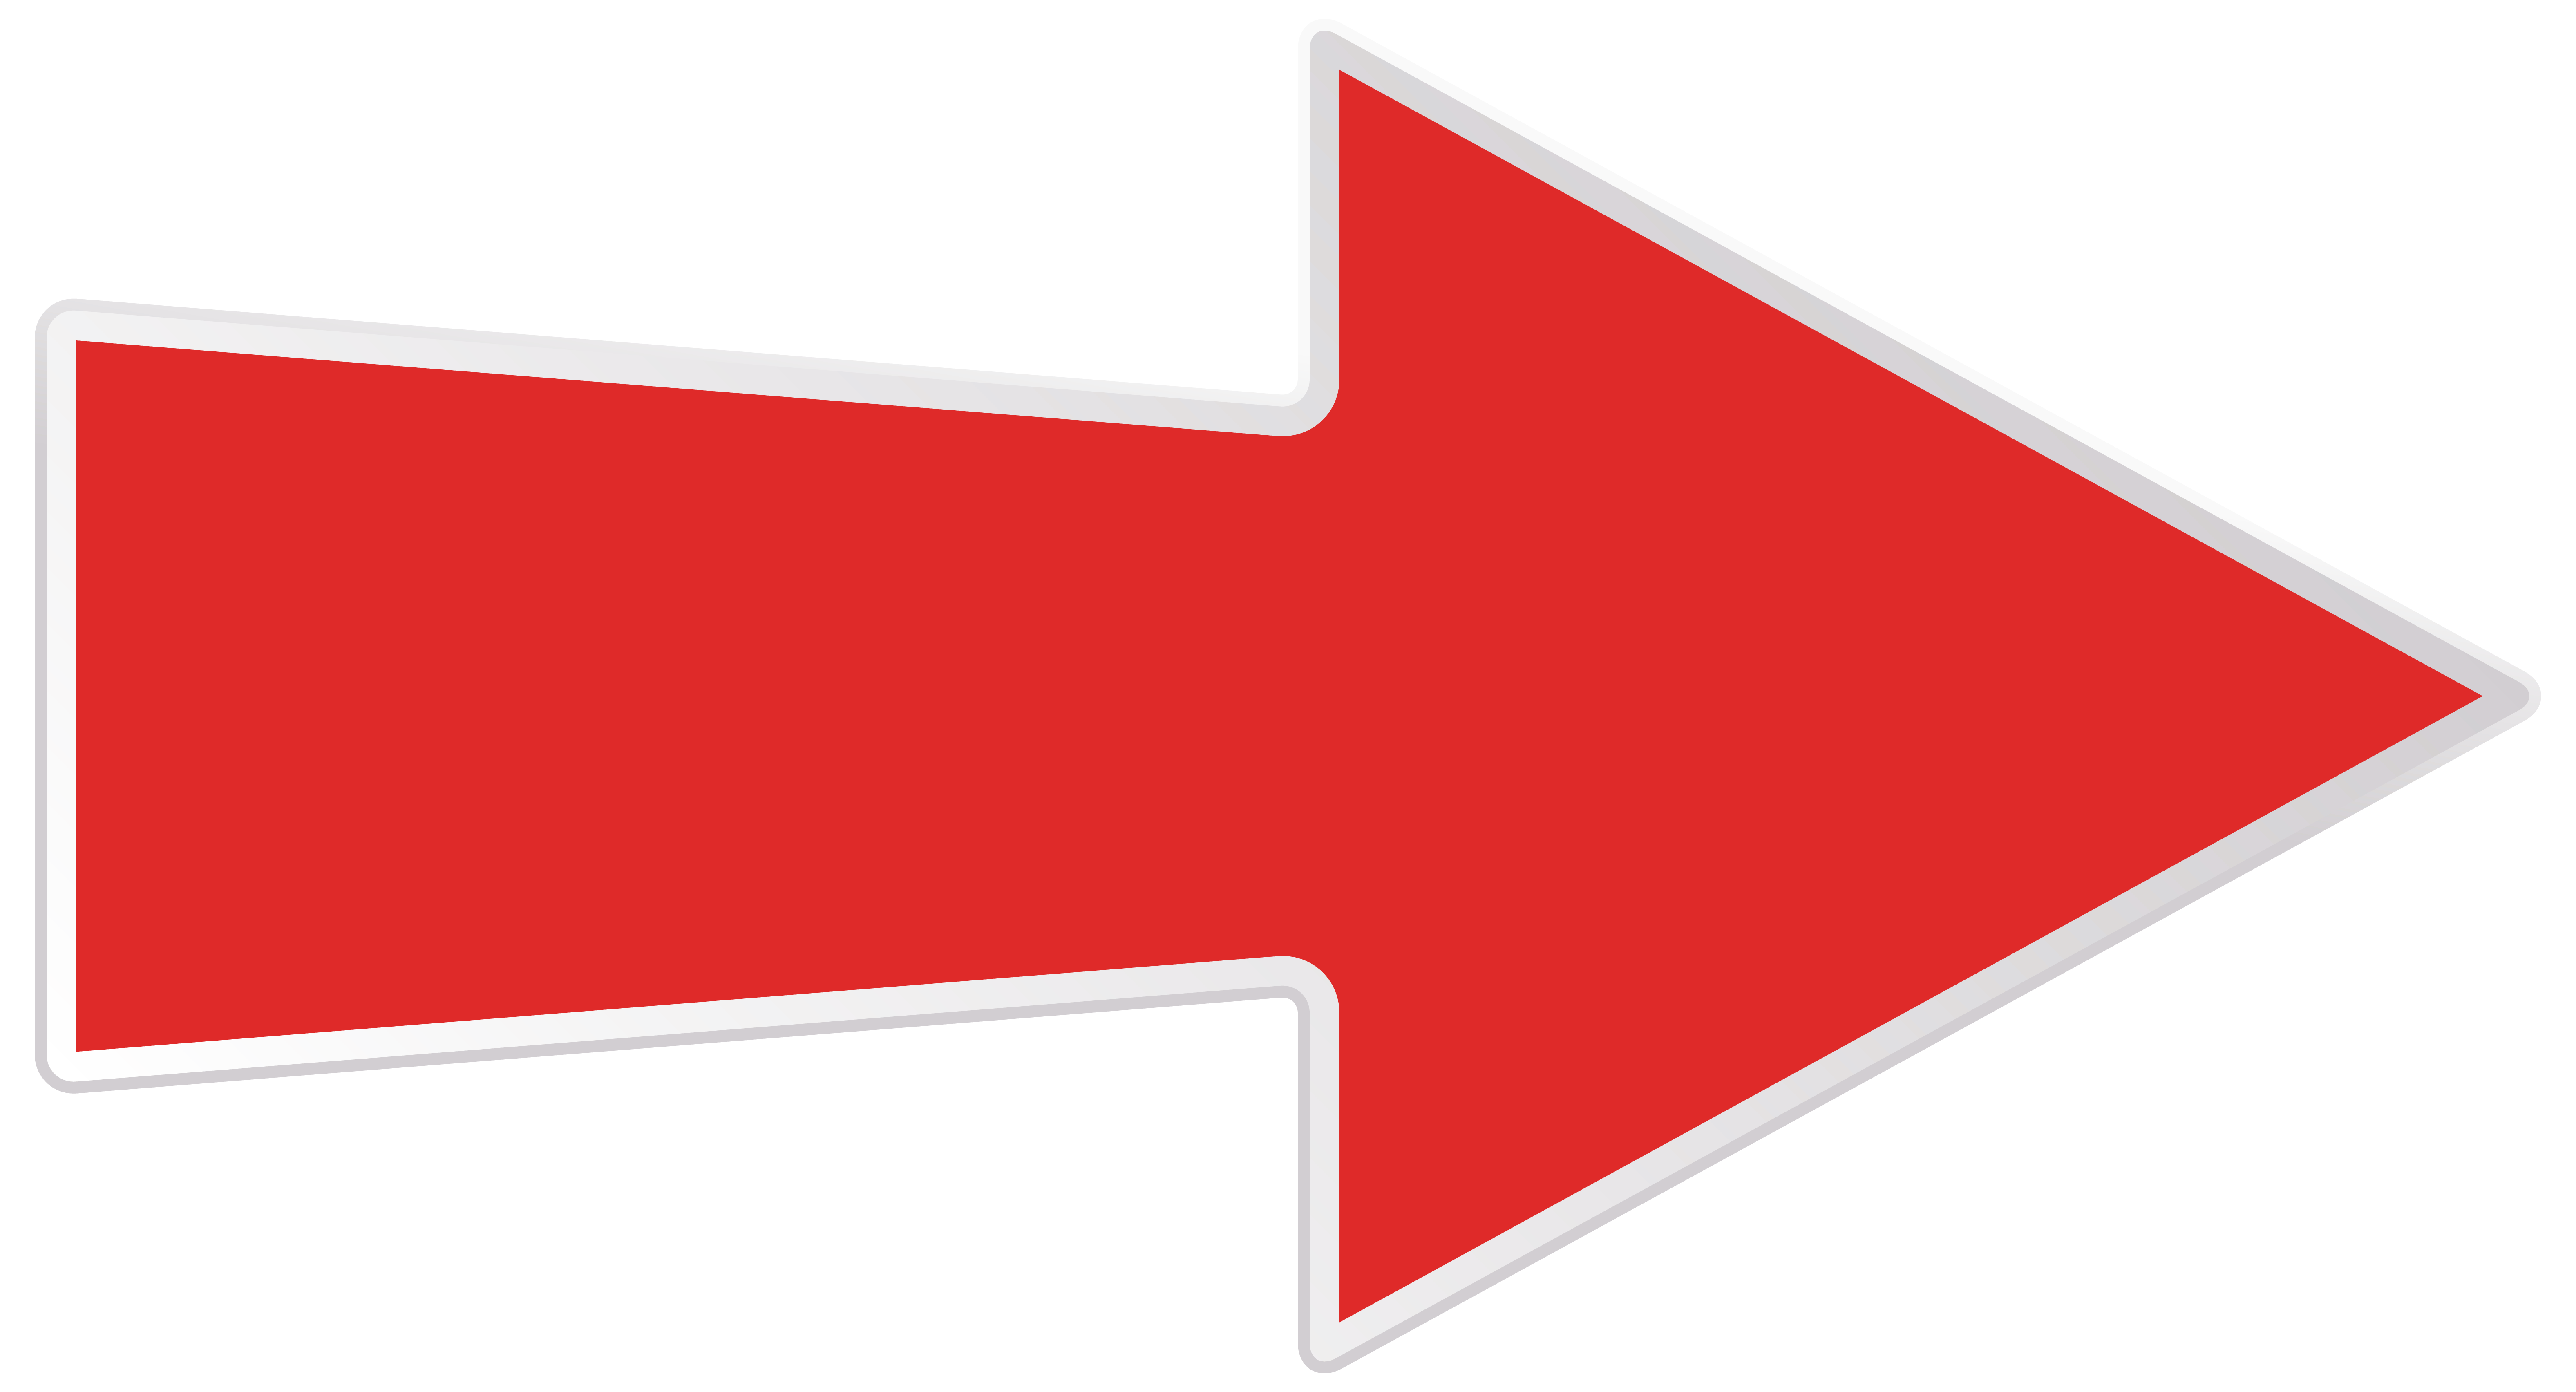 Red Right Arrow Transparent PNG Clip Art Image.